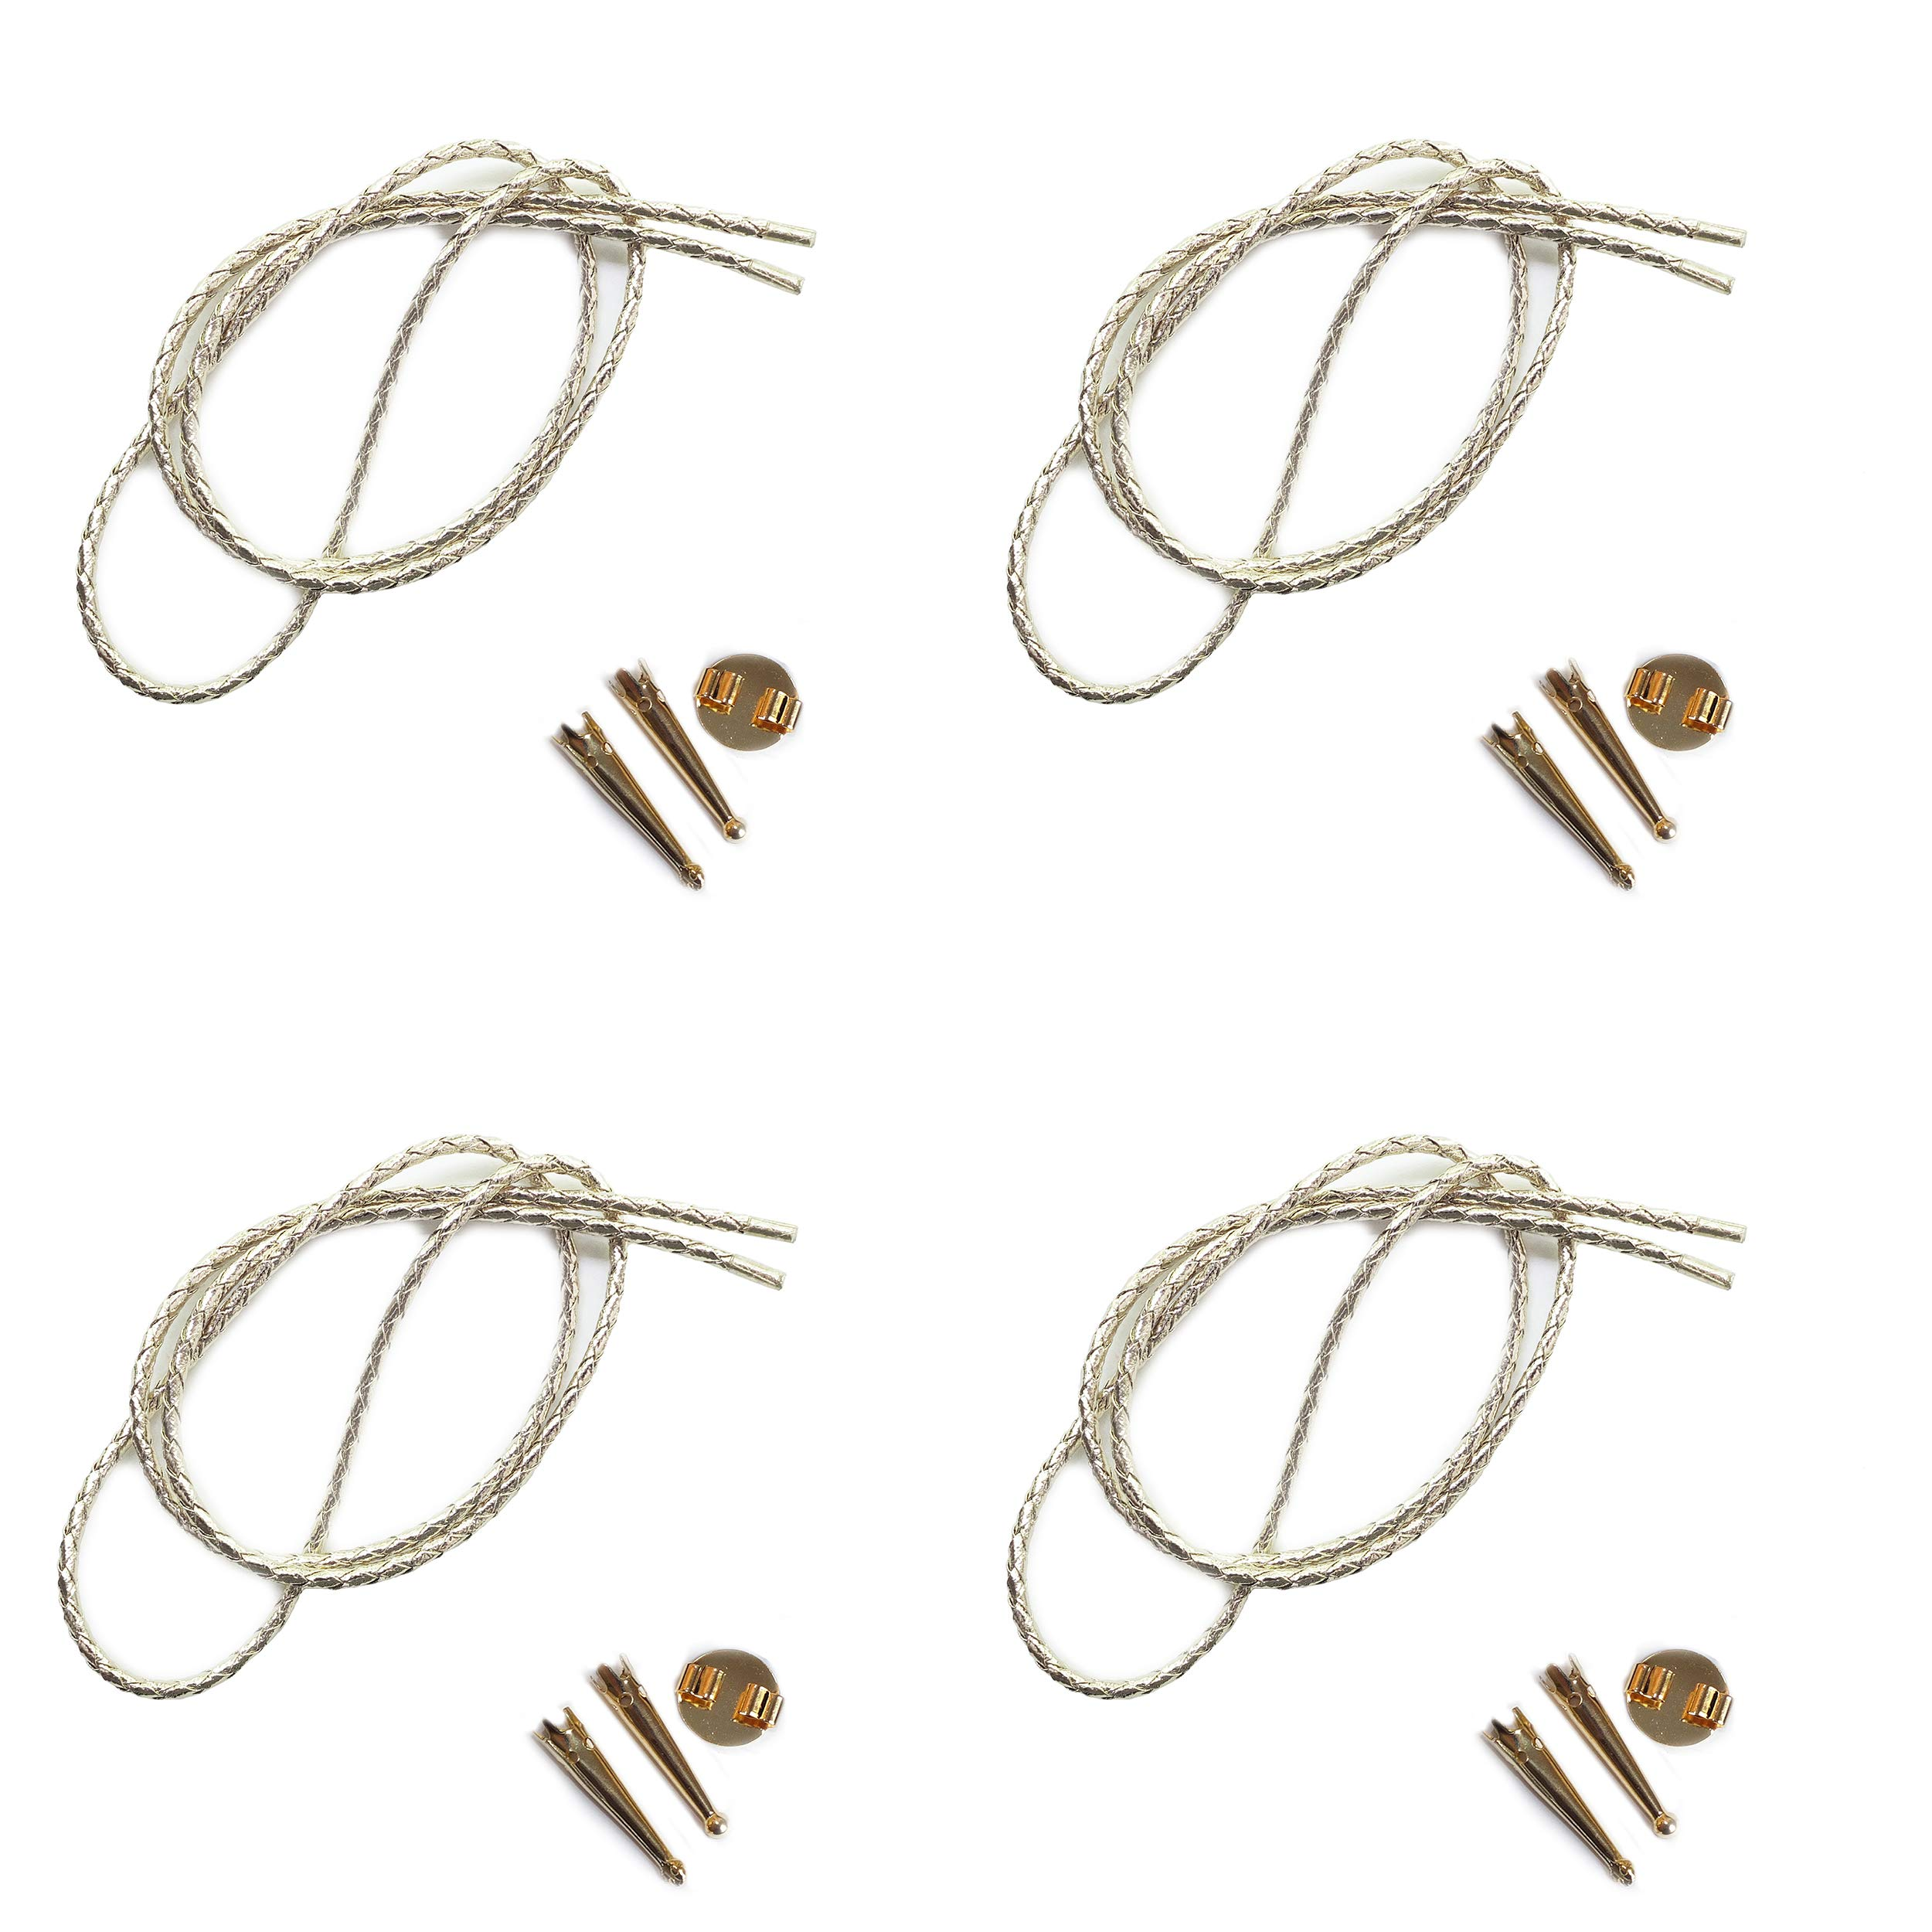 Blank Bolo String Tie Parts Kit Round Slide Smooth Tips Silver Vinyl Braid DIY Gold Tone Supplies for 4 Ties